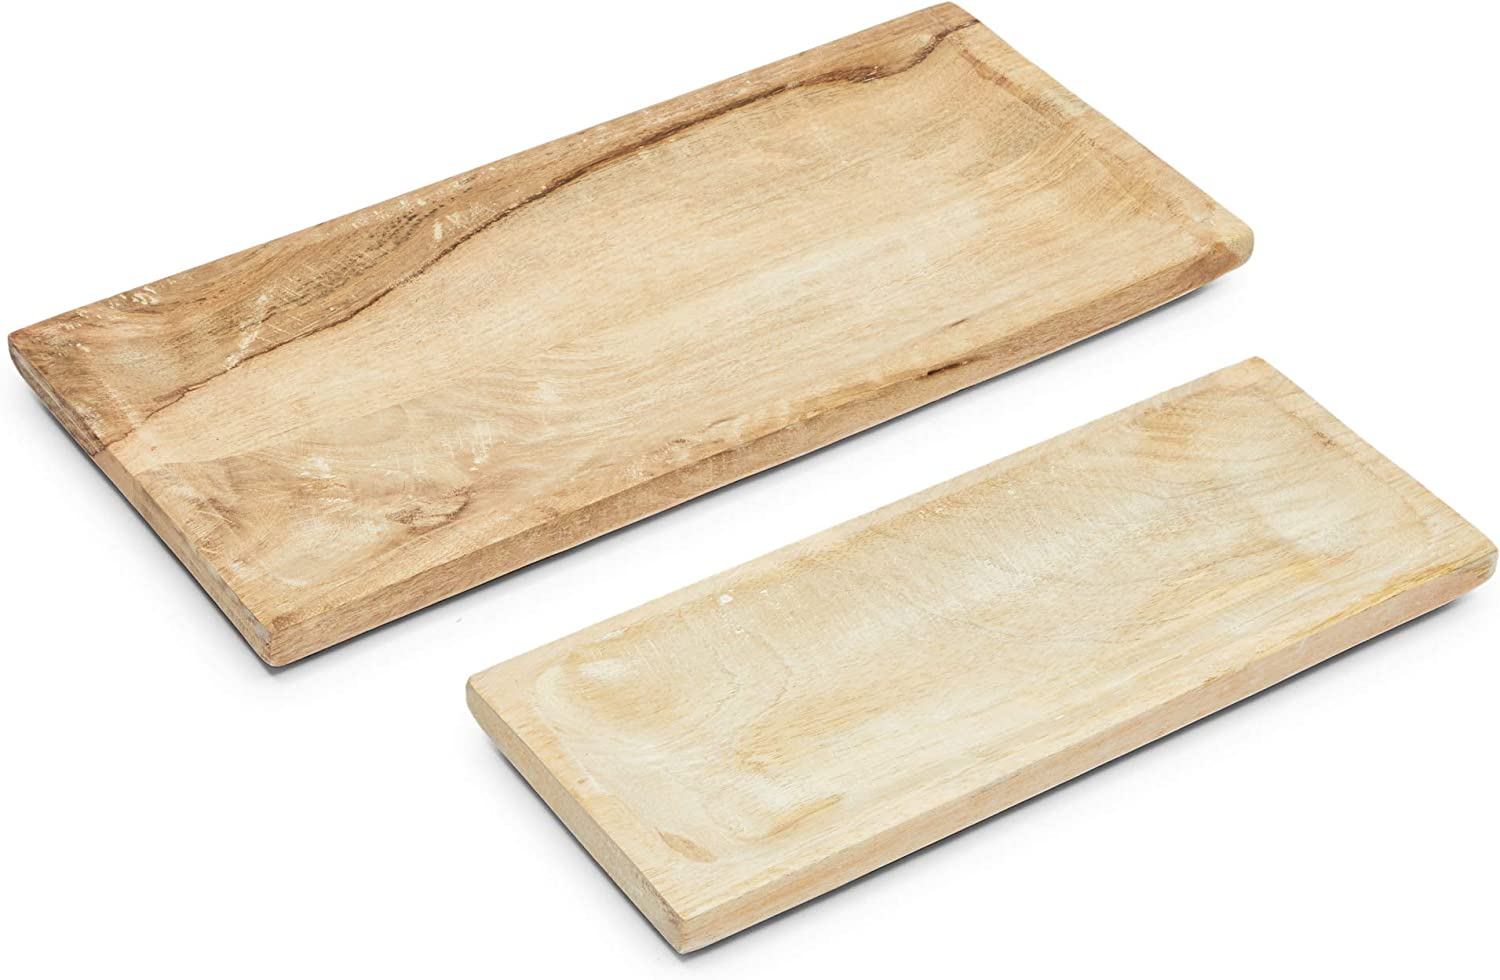 Mango Wood Food Serving Trays, Platters in in 2 Sizes (2 Piece Set)